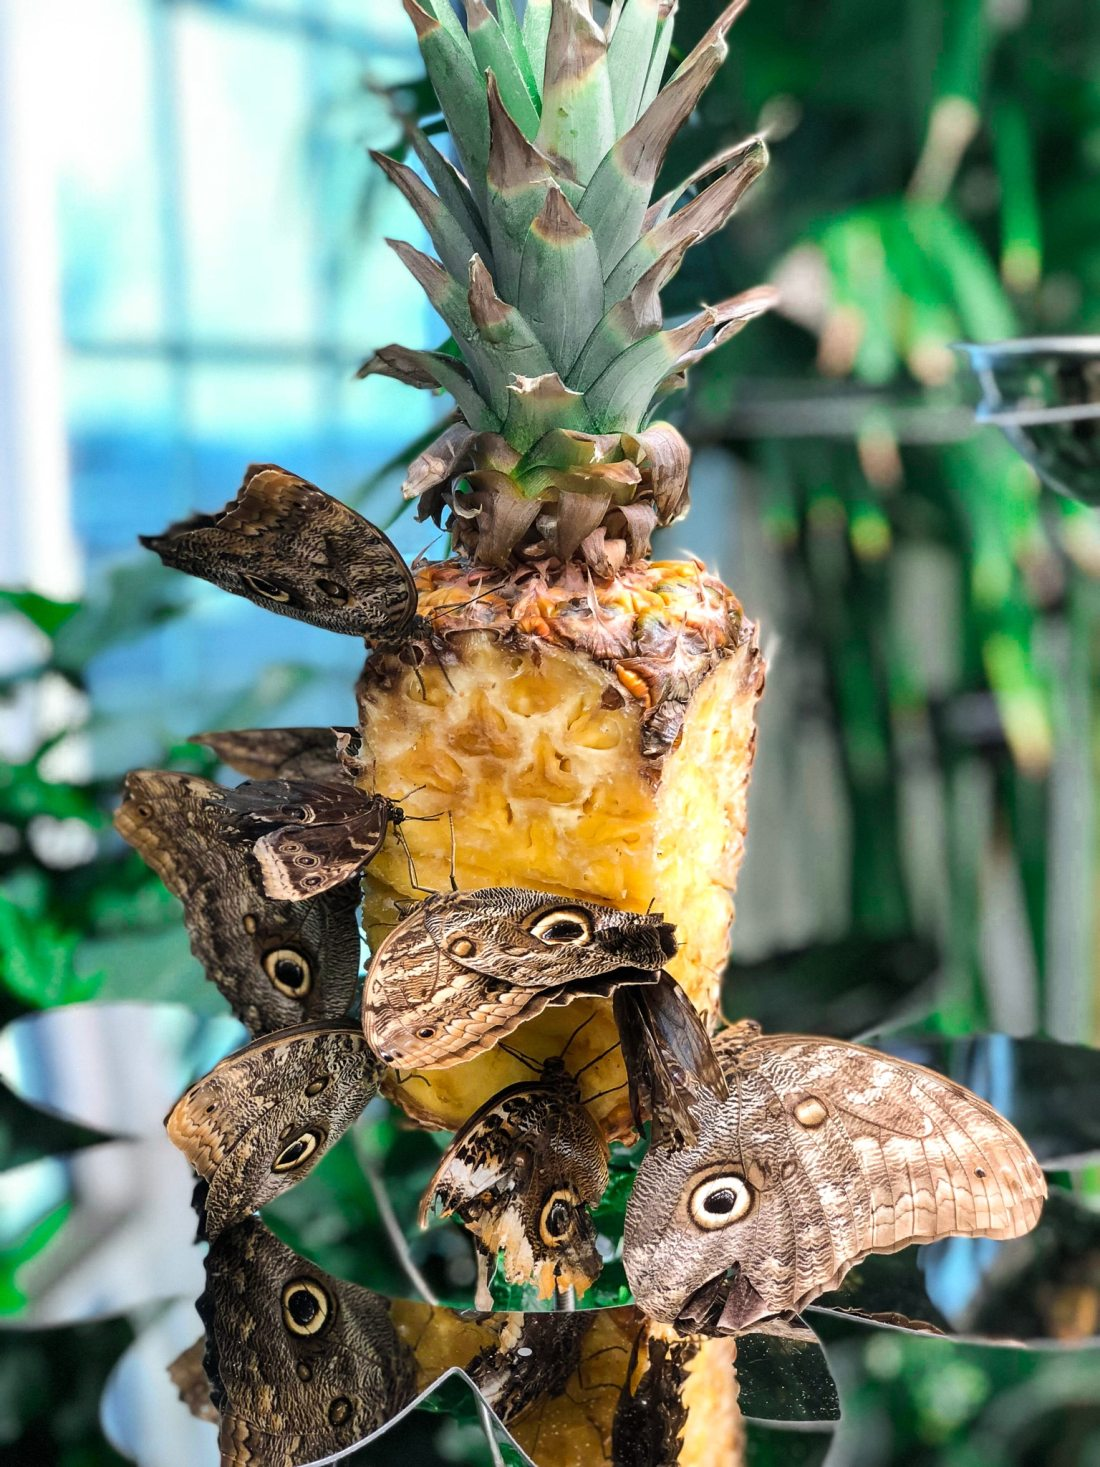 Hershey PA Butterflies Pineapple. Visit the Hershey Gardens to see real life butterflies! Play with butterflies and take amazing photos.